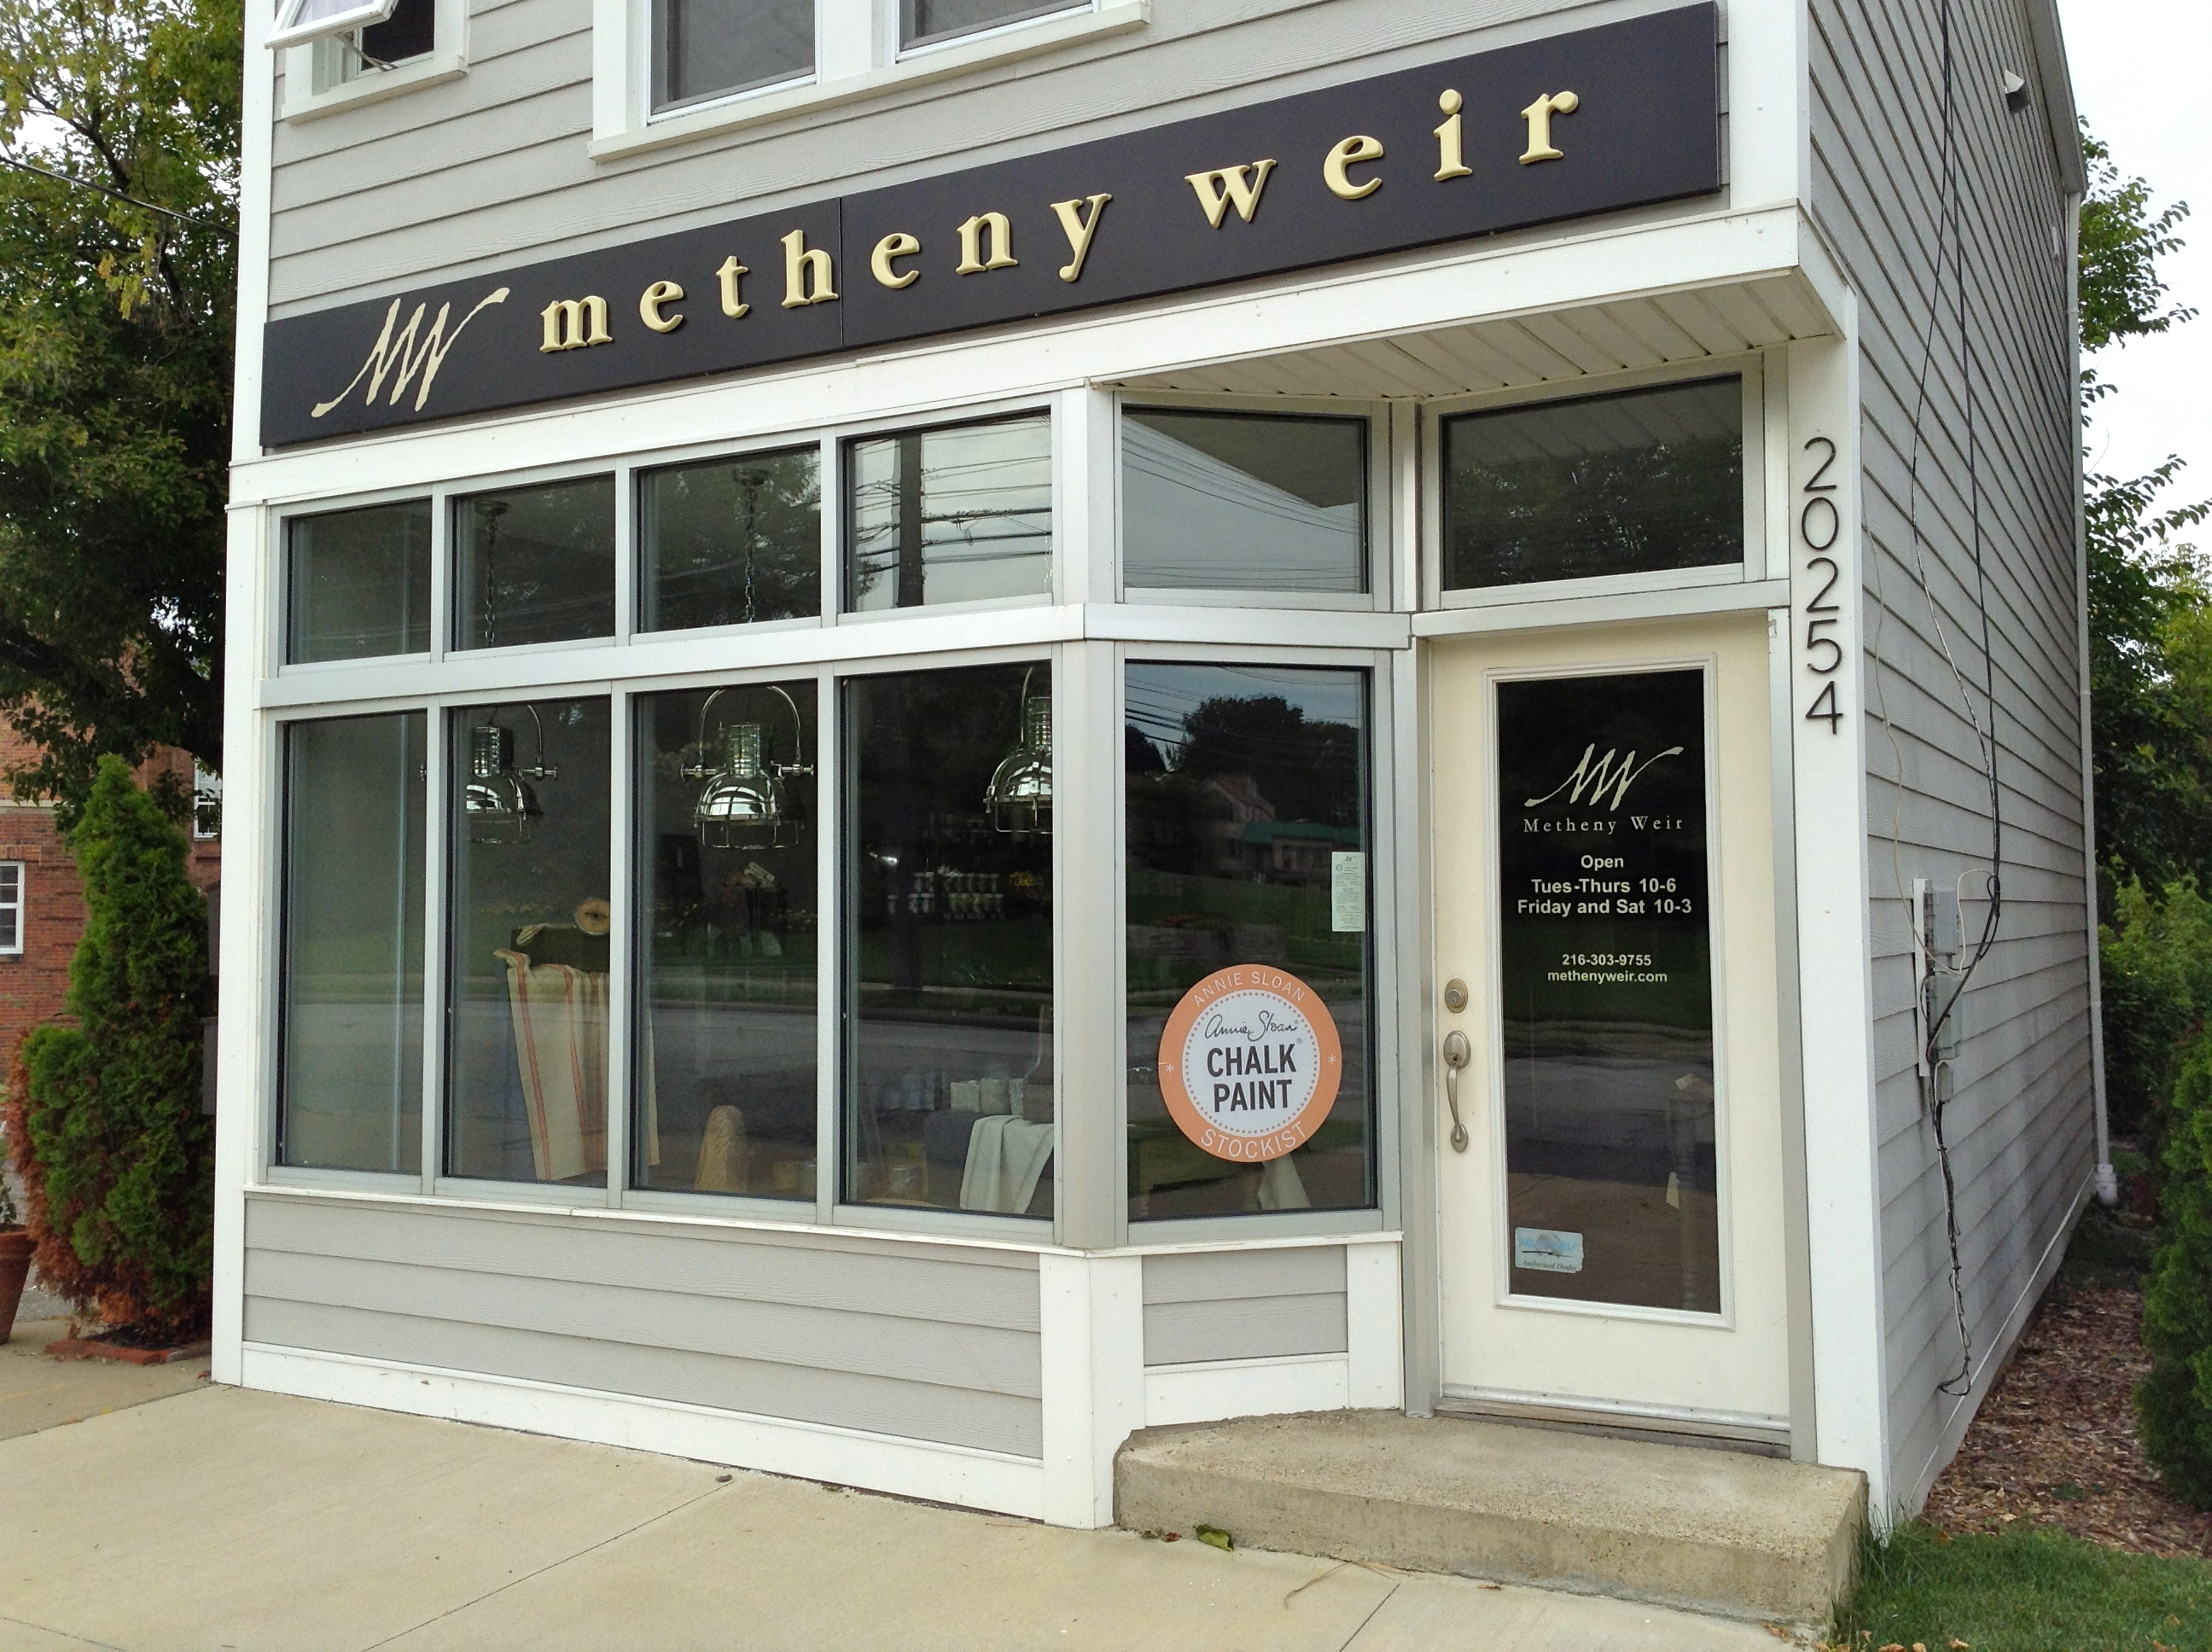 Metheny Weir Painted Finishes